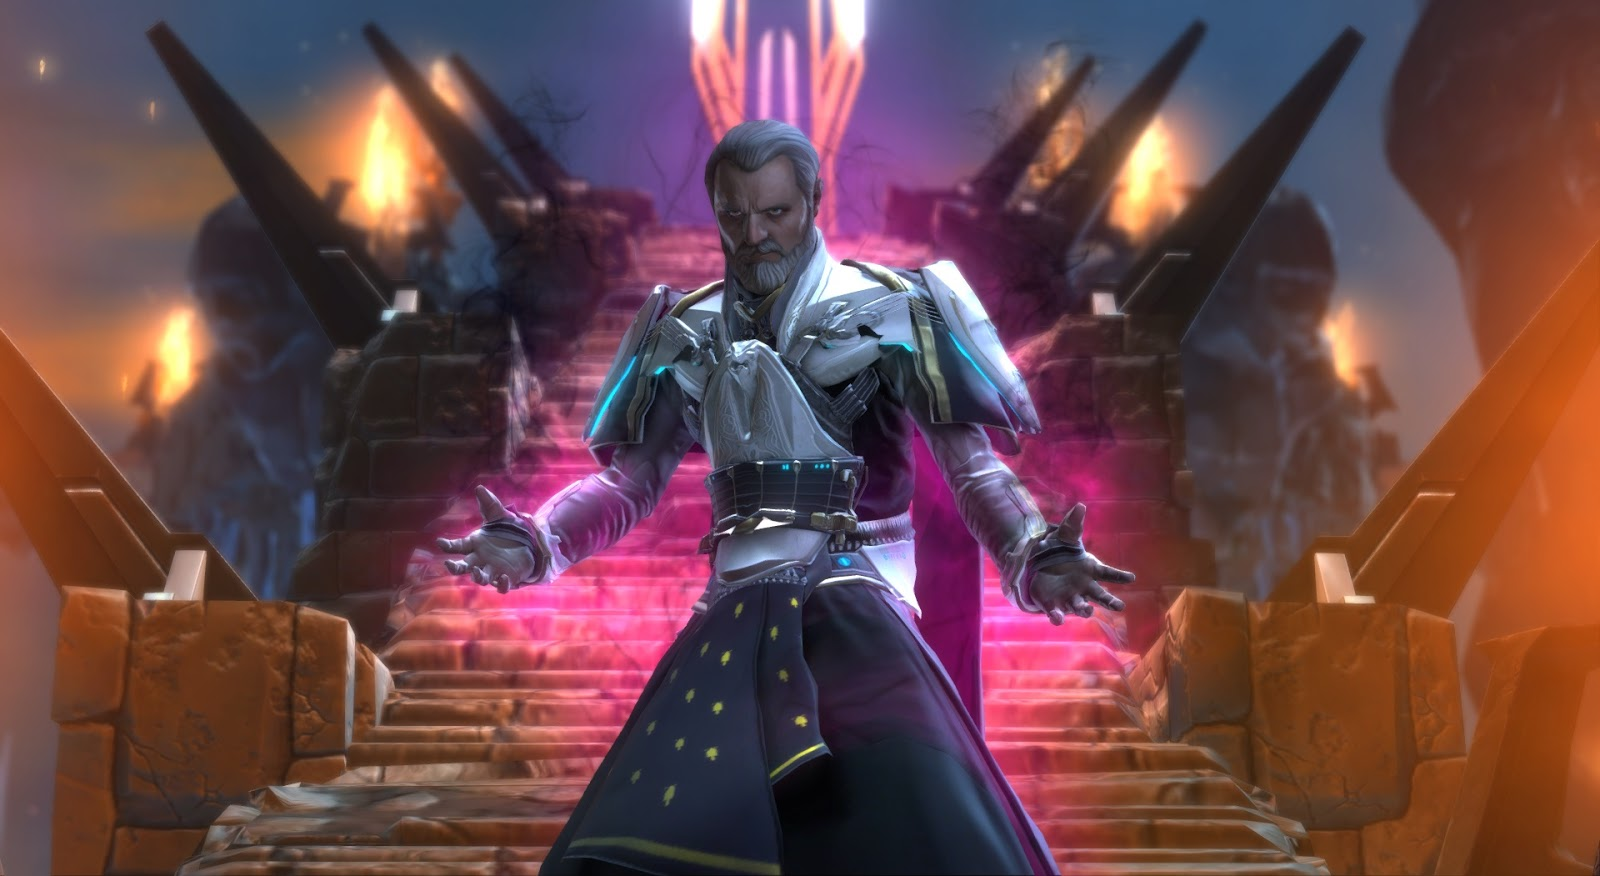 Going Commando A Swtor Fan Blog March 2017 (dark side, sith, attacker) godlike force entity who will go to any lengths to survive ritual of destiny (special): going commando a swtor fan blog